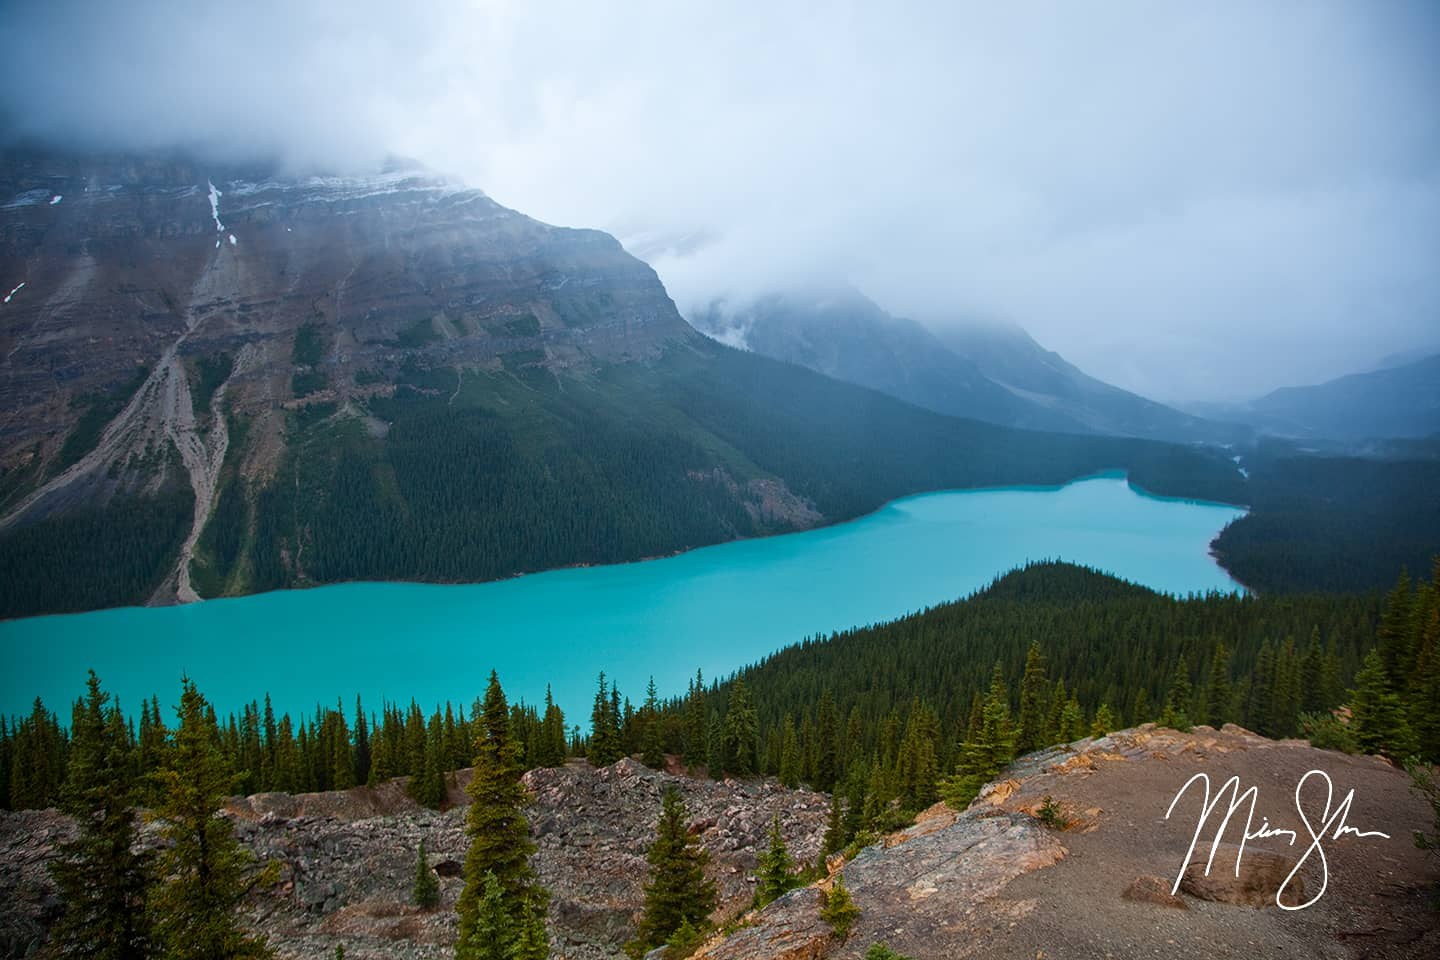 Open edition fine art print of Foggy Peyto Lake Classic from Mickey Shannon Photography. Location: Peyto Lake, Icefields Parkway, Banff National Park, Alberta, Canada